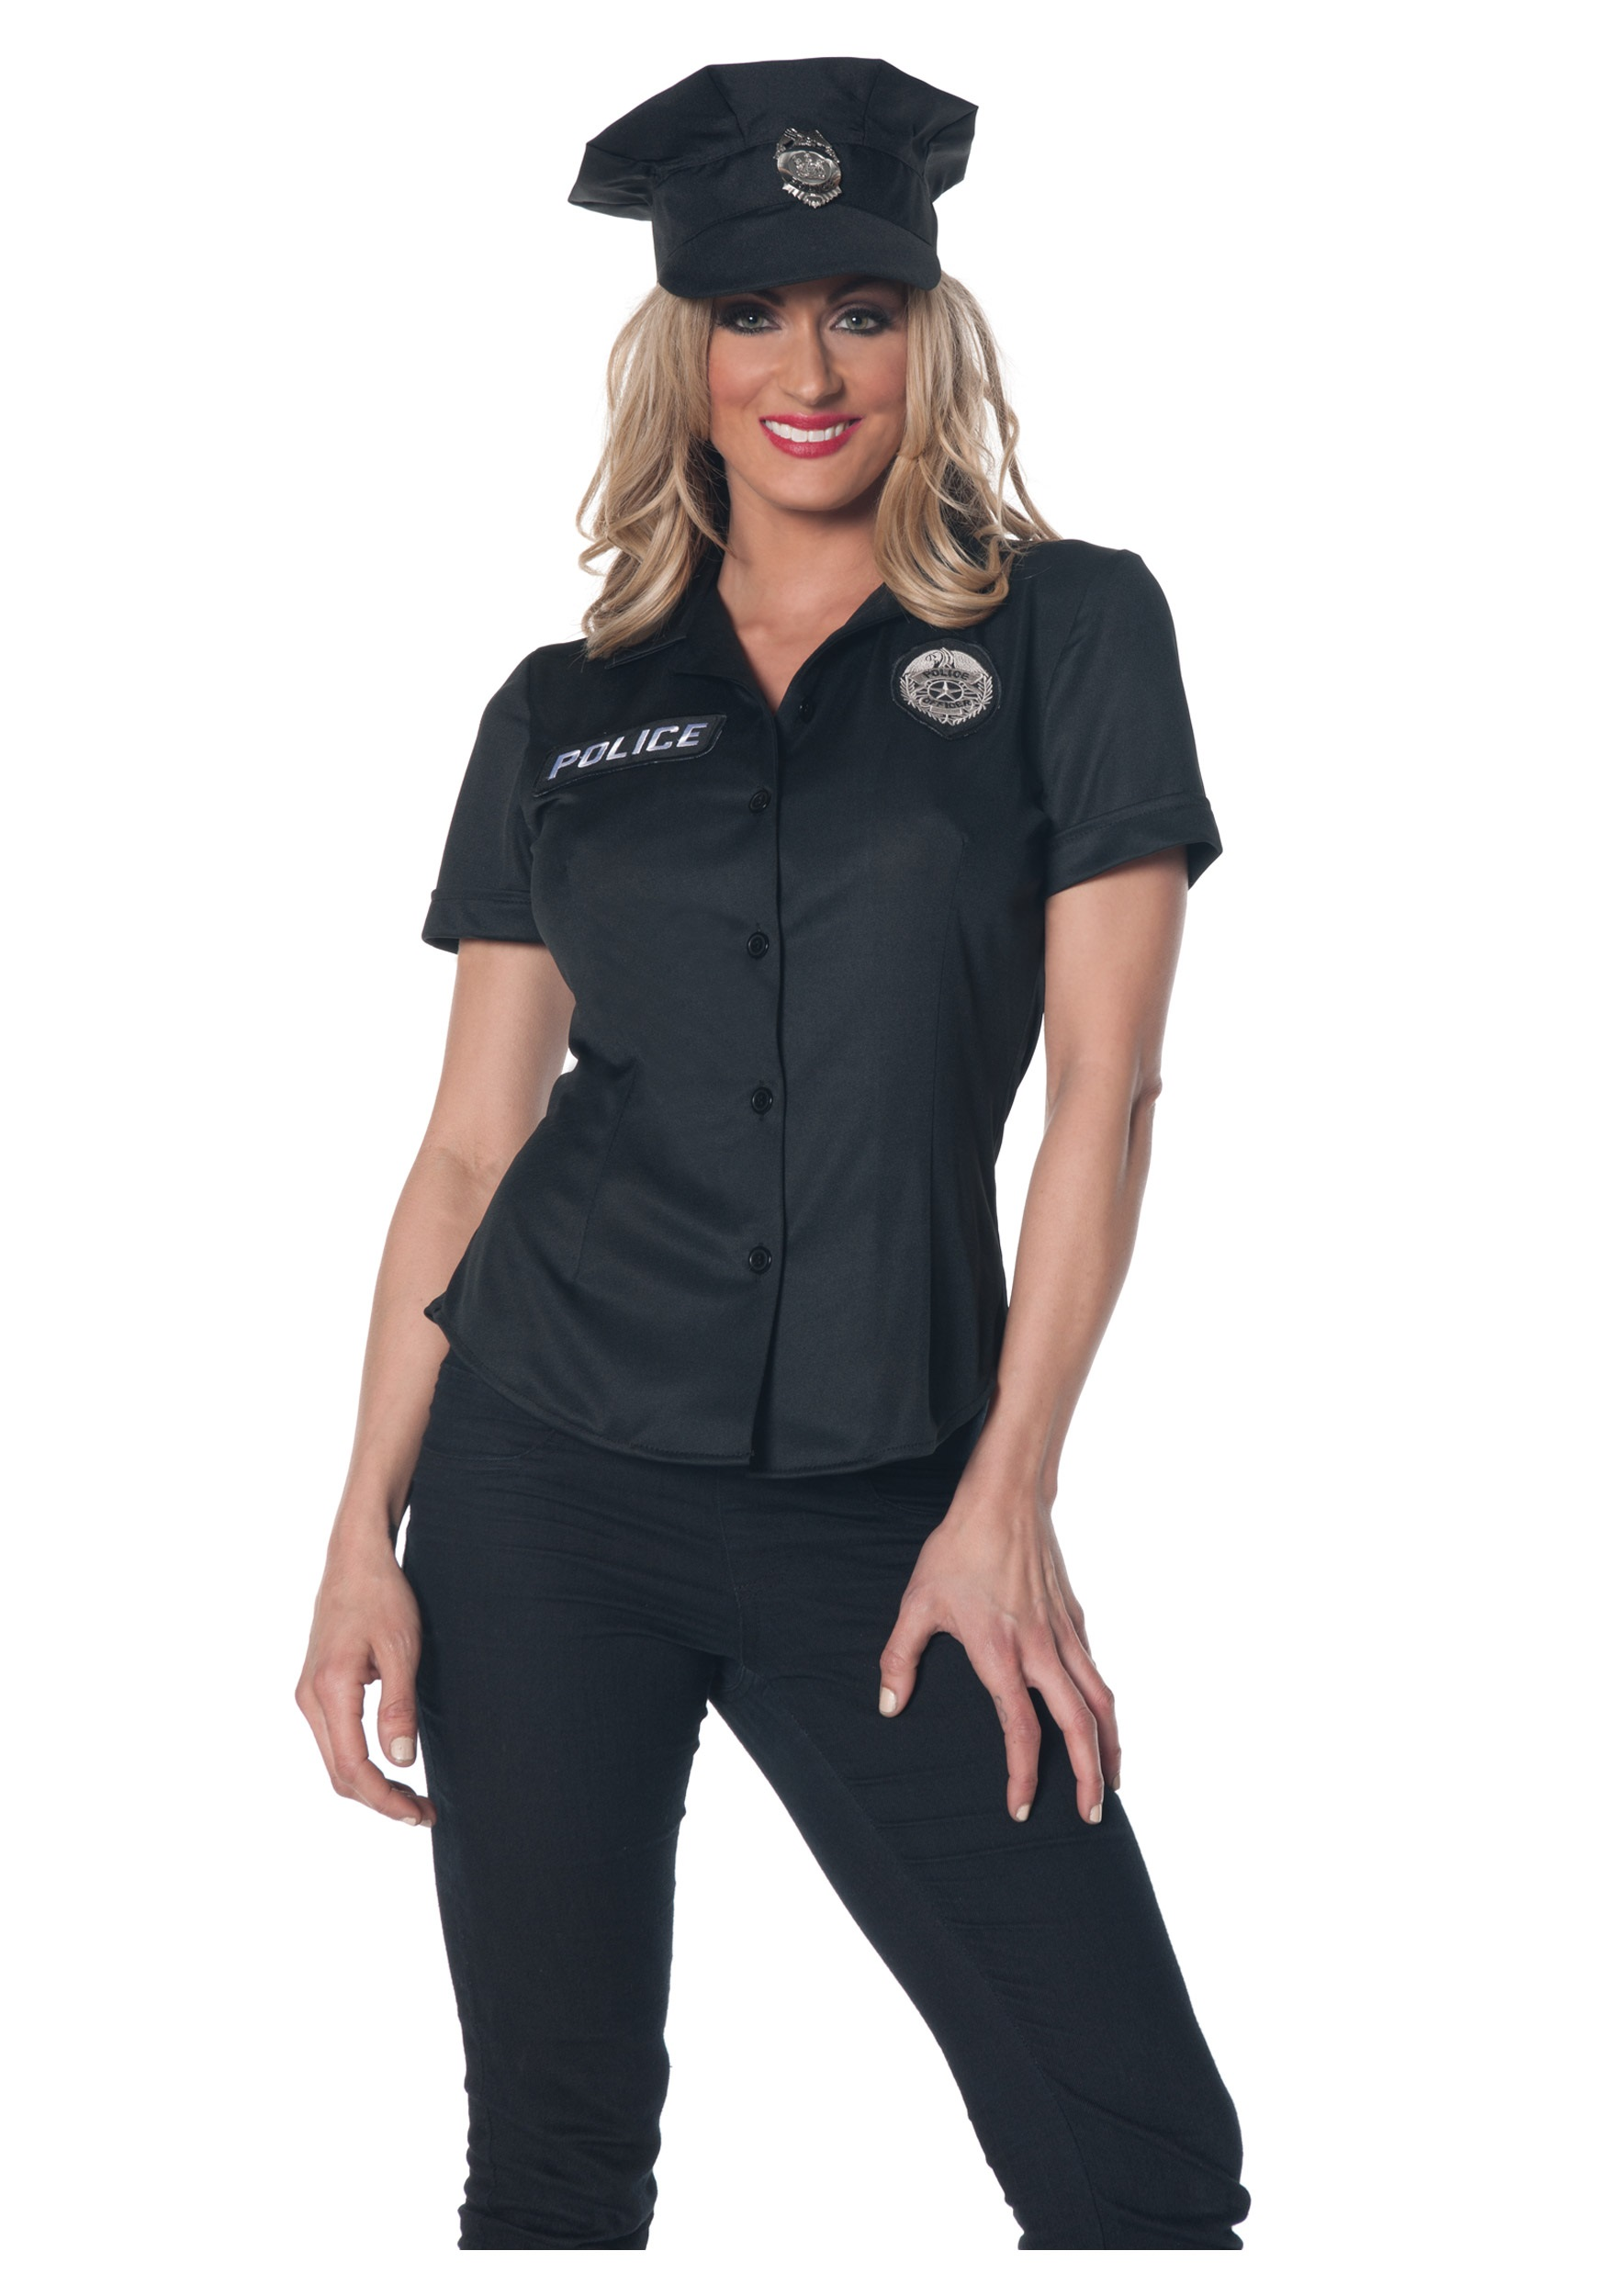 womens police shirt costume - Girls Cop Halloween Costume